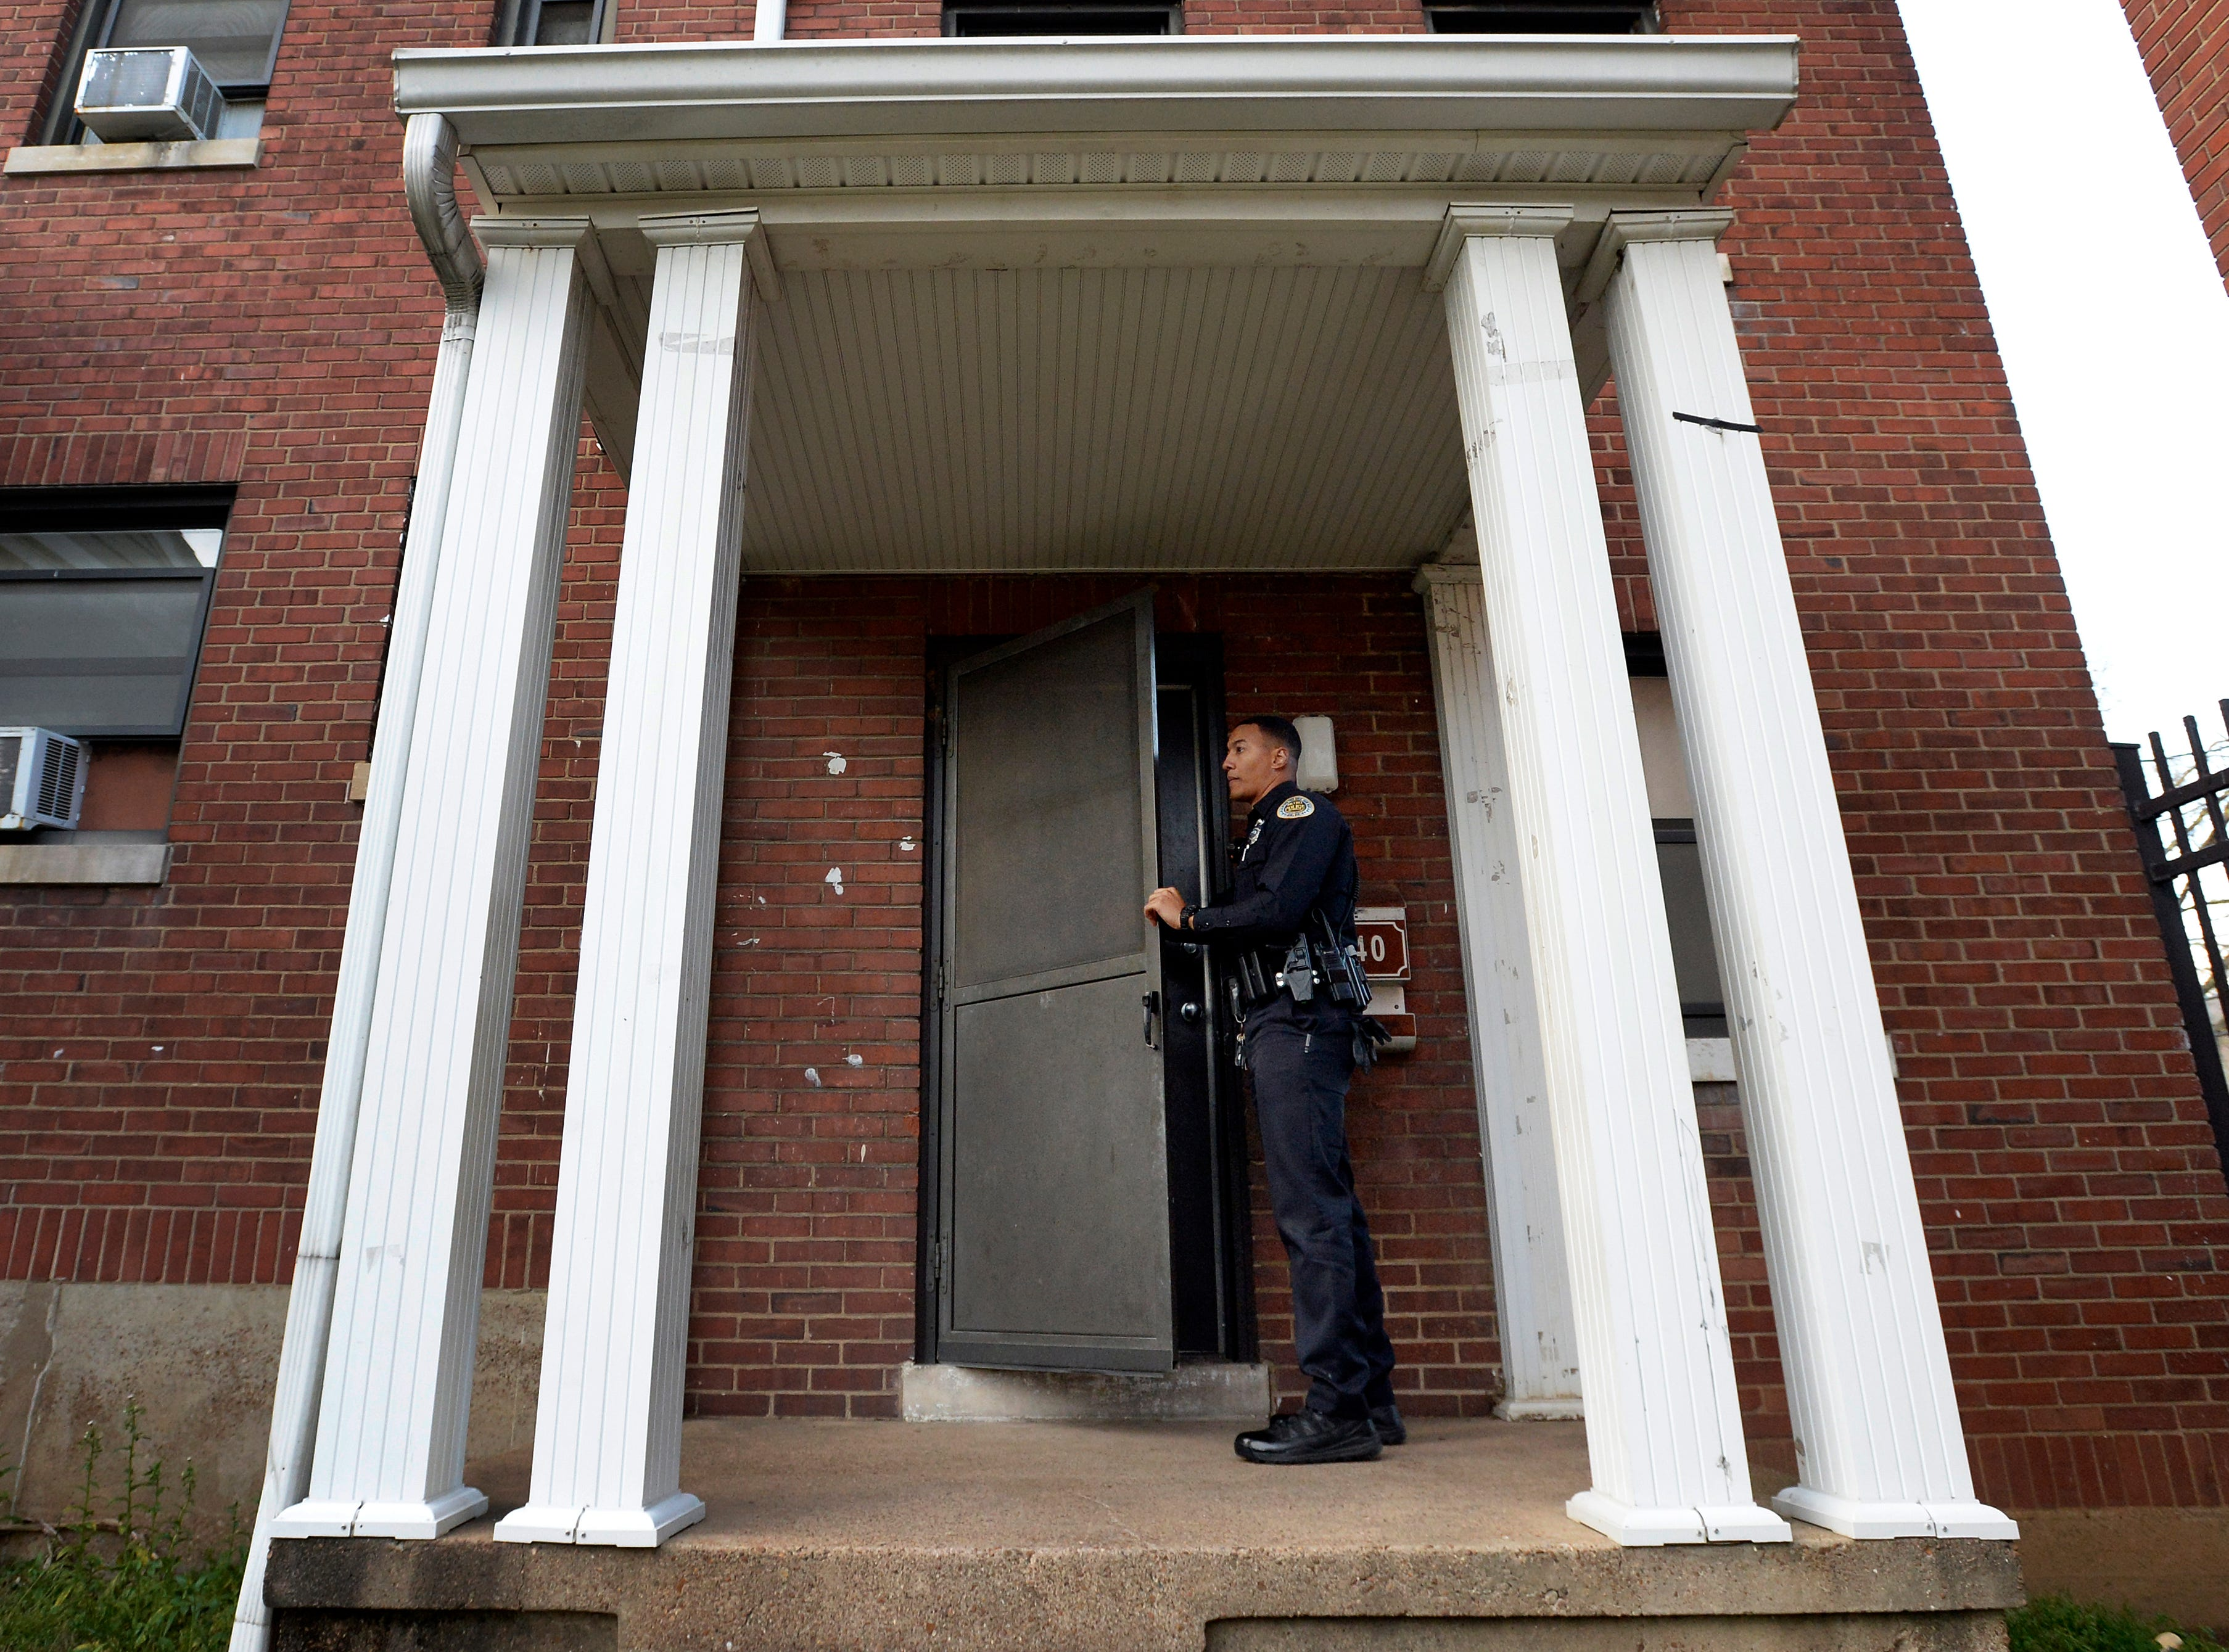 """Metro Nashville police officer Chris Dickerson knocks on an apartment door hoping to talk with the resident on Monday, April 1, 2019 in Nashville, Tenn. During the """"fixed post"""" time of his shift, Dickerson spends about 30 minutes in different areas of the north precinct visiting with people in the neighborhood."""